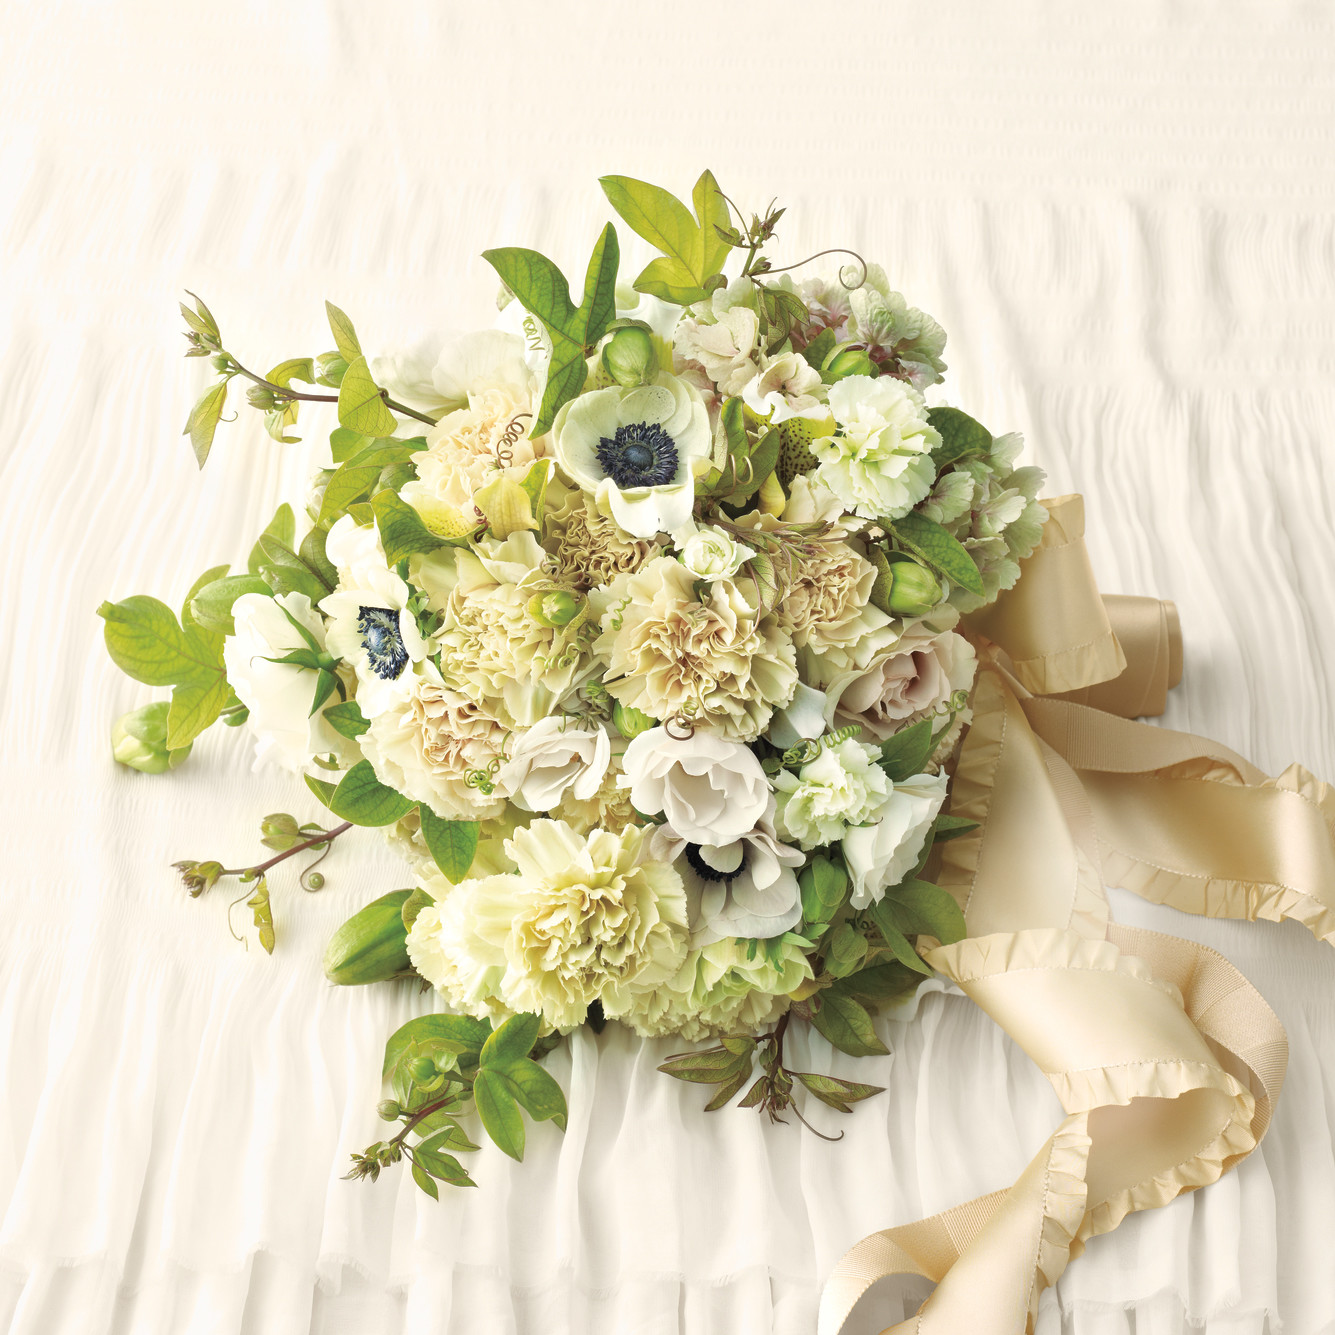 Elegant and inexpensive wedding flower ideas martha stewart weddings izmirmasajfo